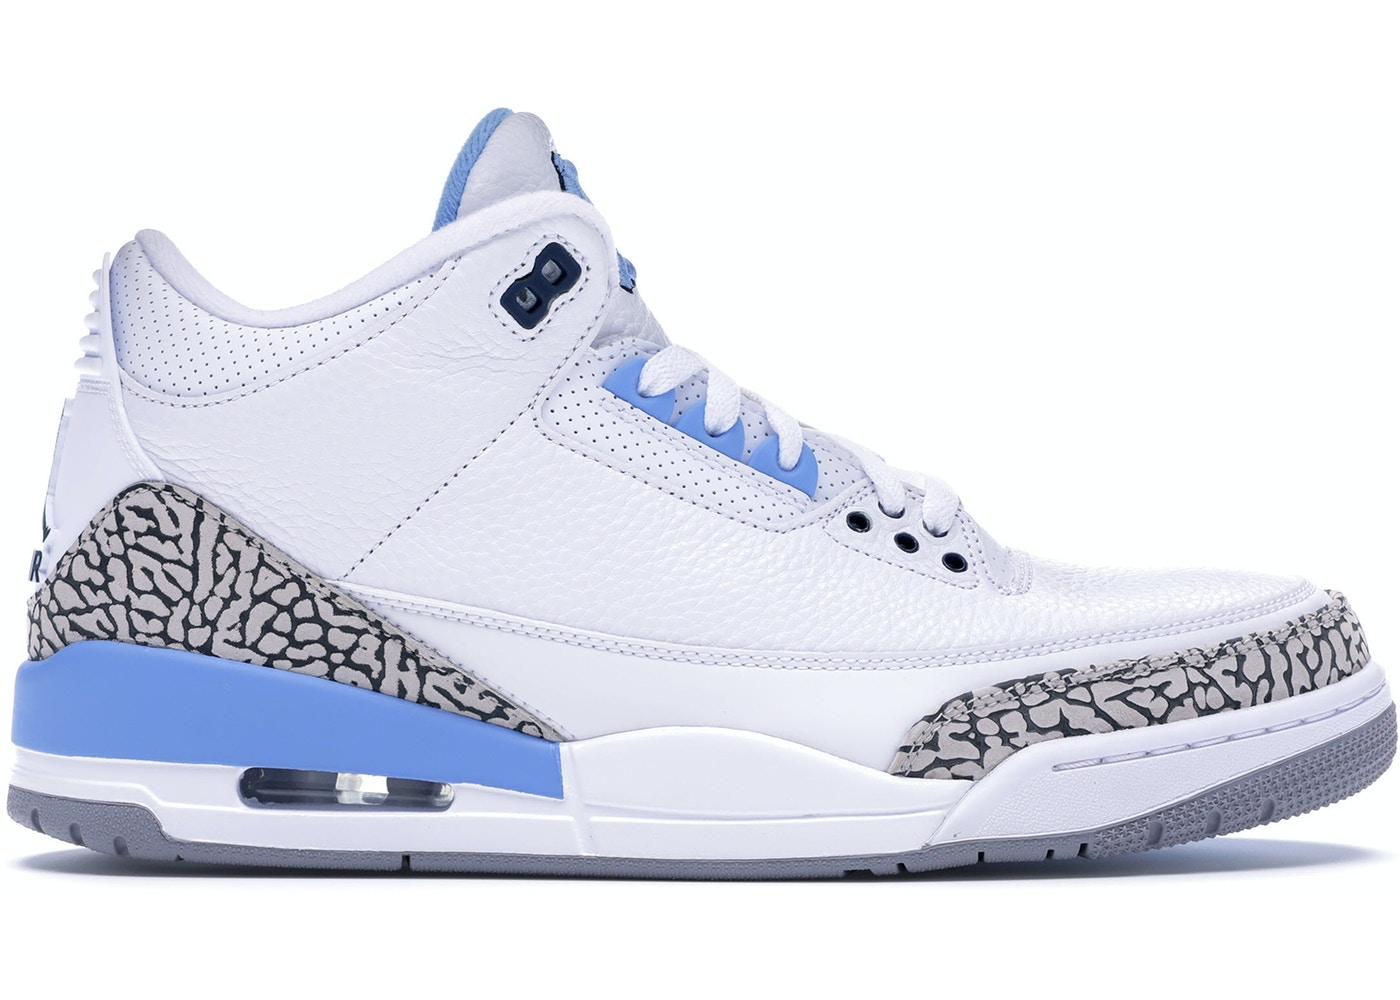 finest selection 5ae46 52baa Jordan 3 Retro UNC PE